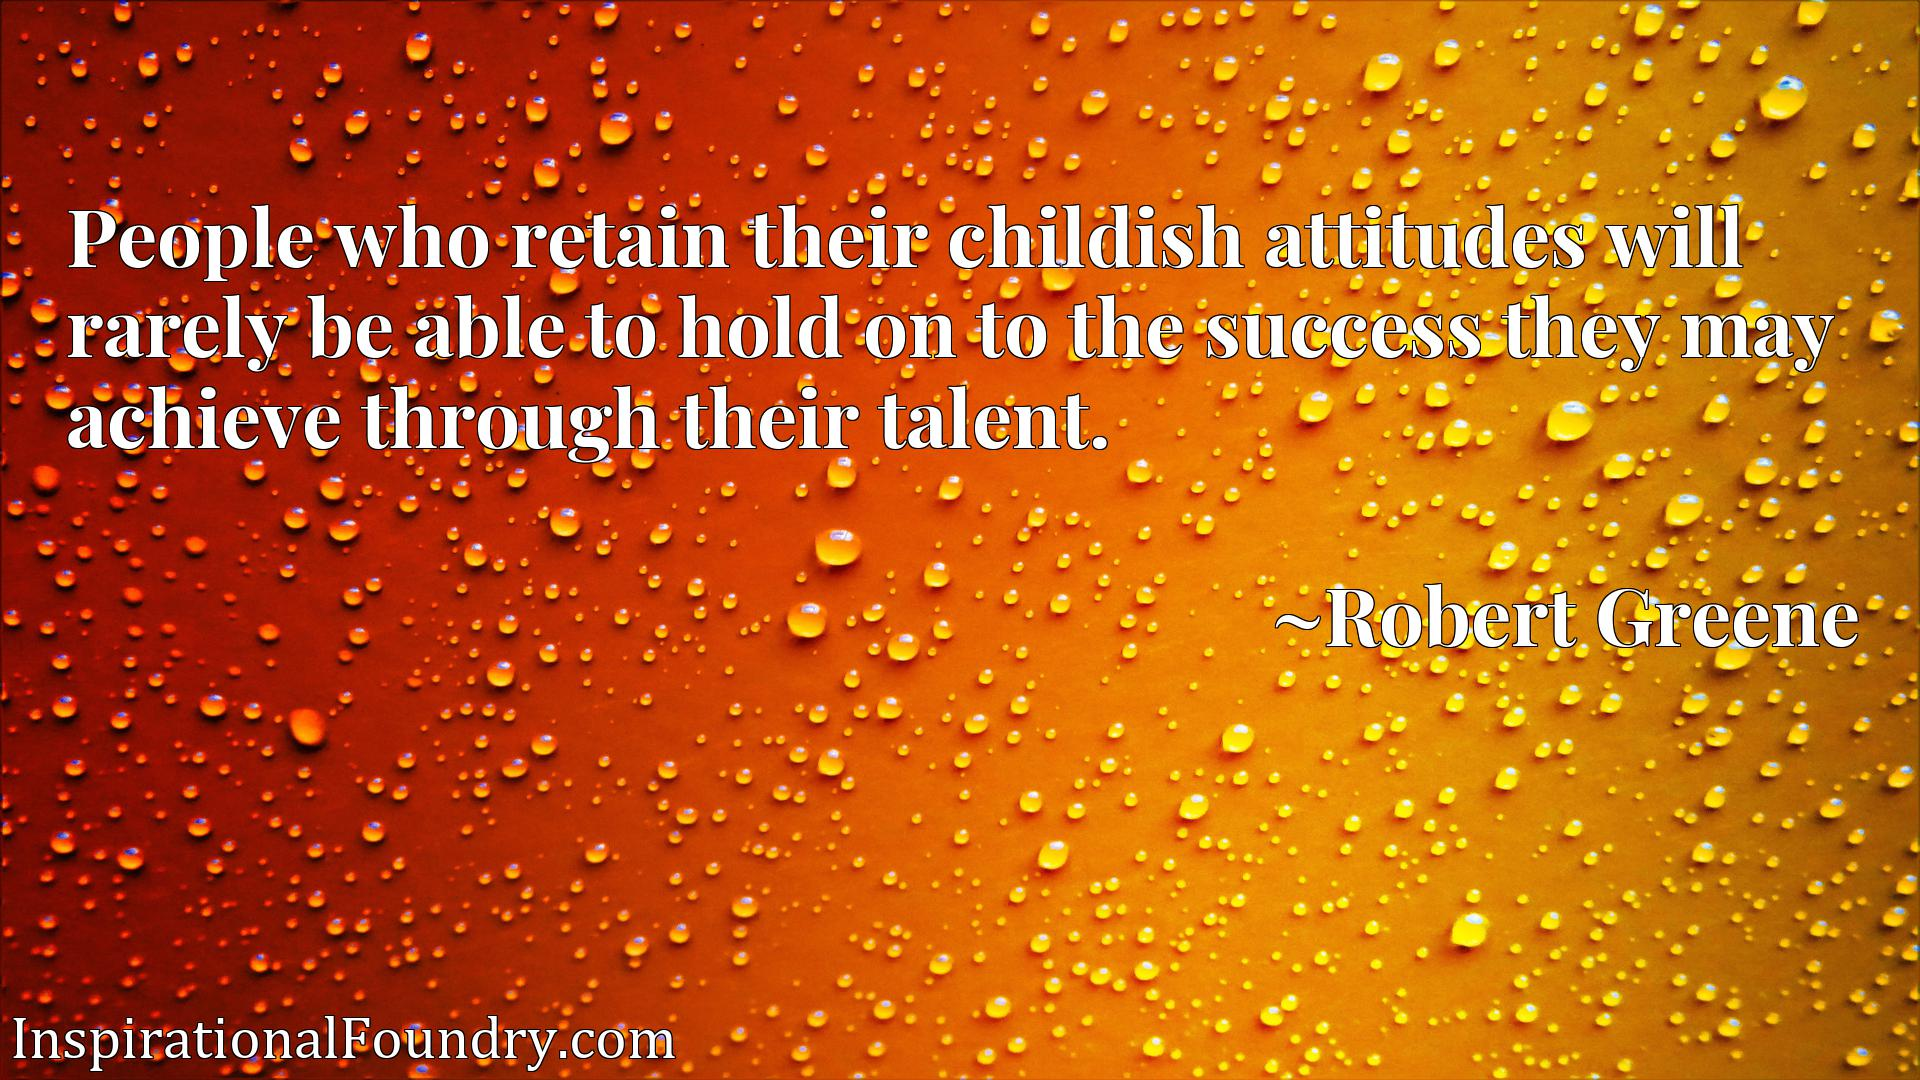 People who retain their childish attitudes will rarely be able to hold on to the success they may achieve through their talent.